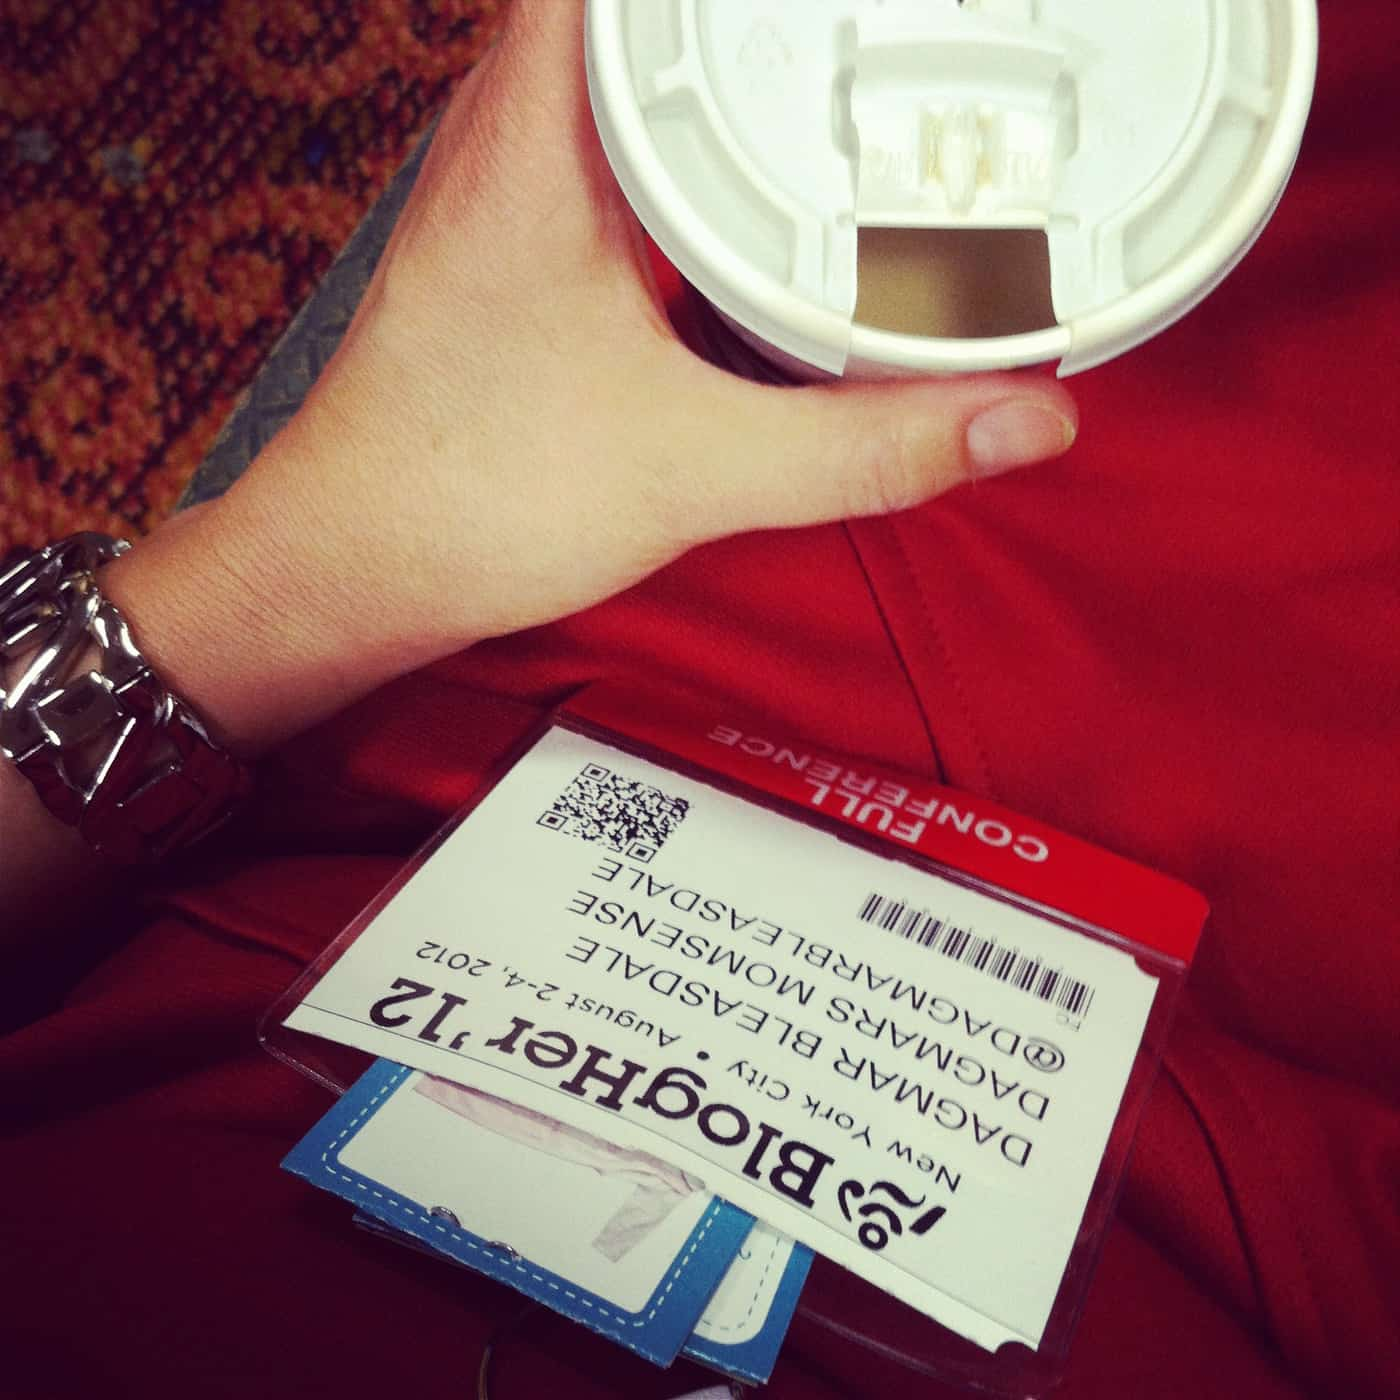 BlogHer'12: What I Learned About iPhoneograpy, Design Bloggers, and More